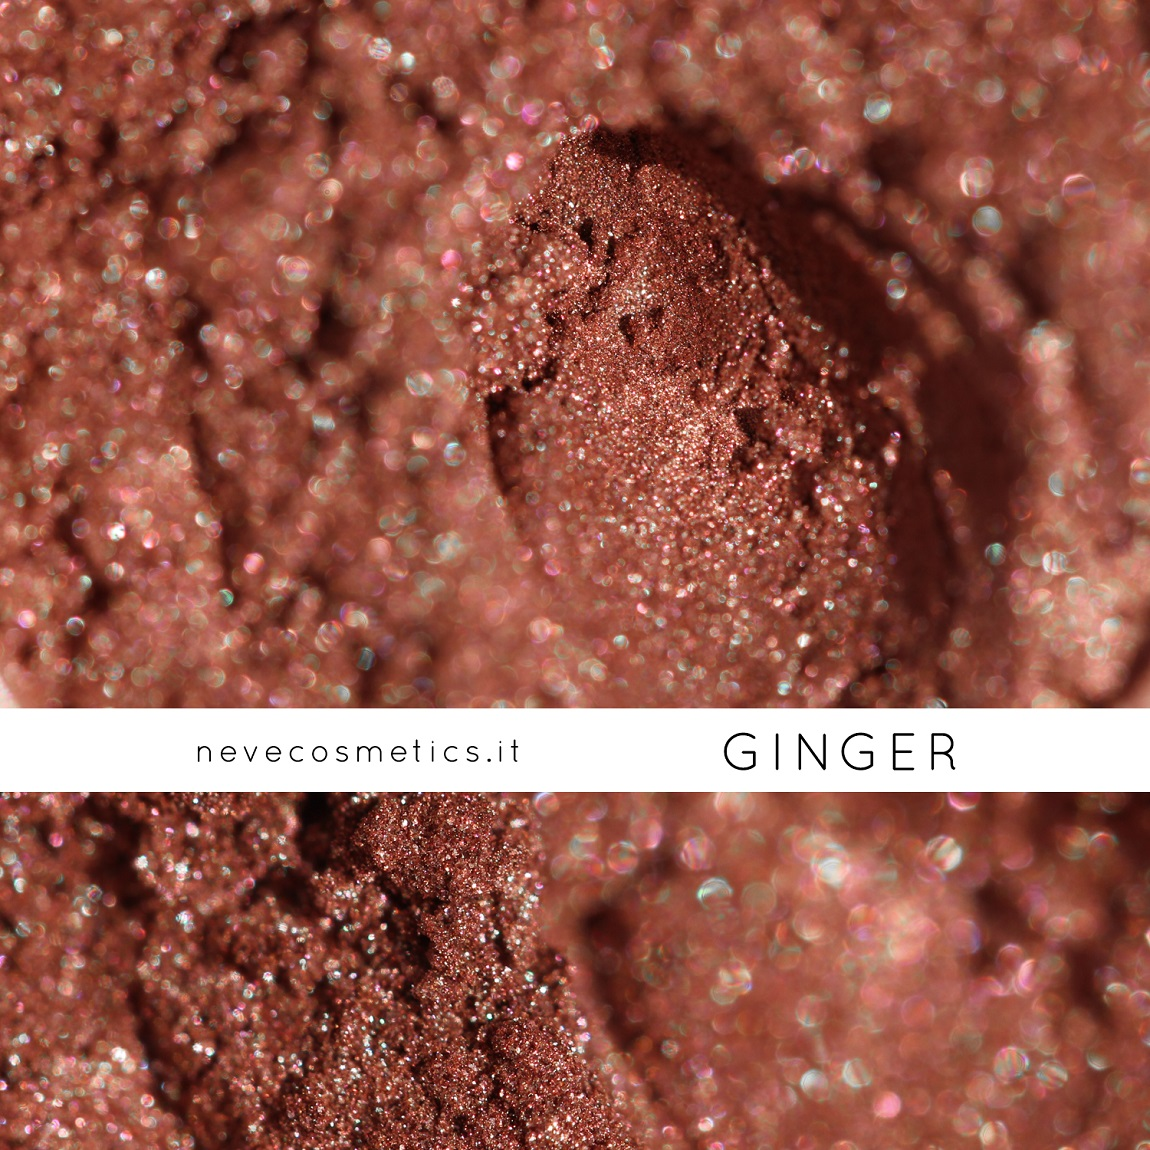 Swatch of the copper eyeshadow Ginger by Neve Cosmetics